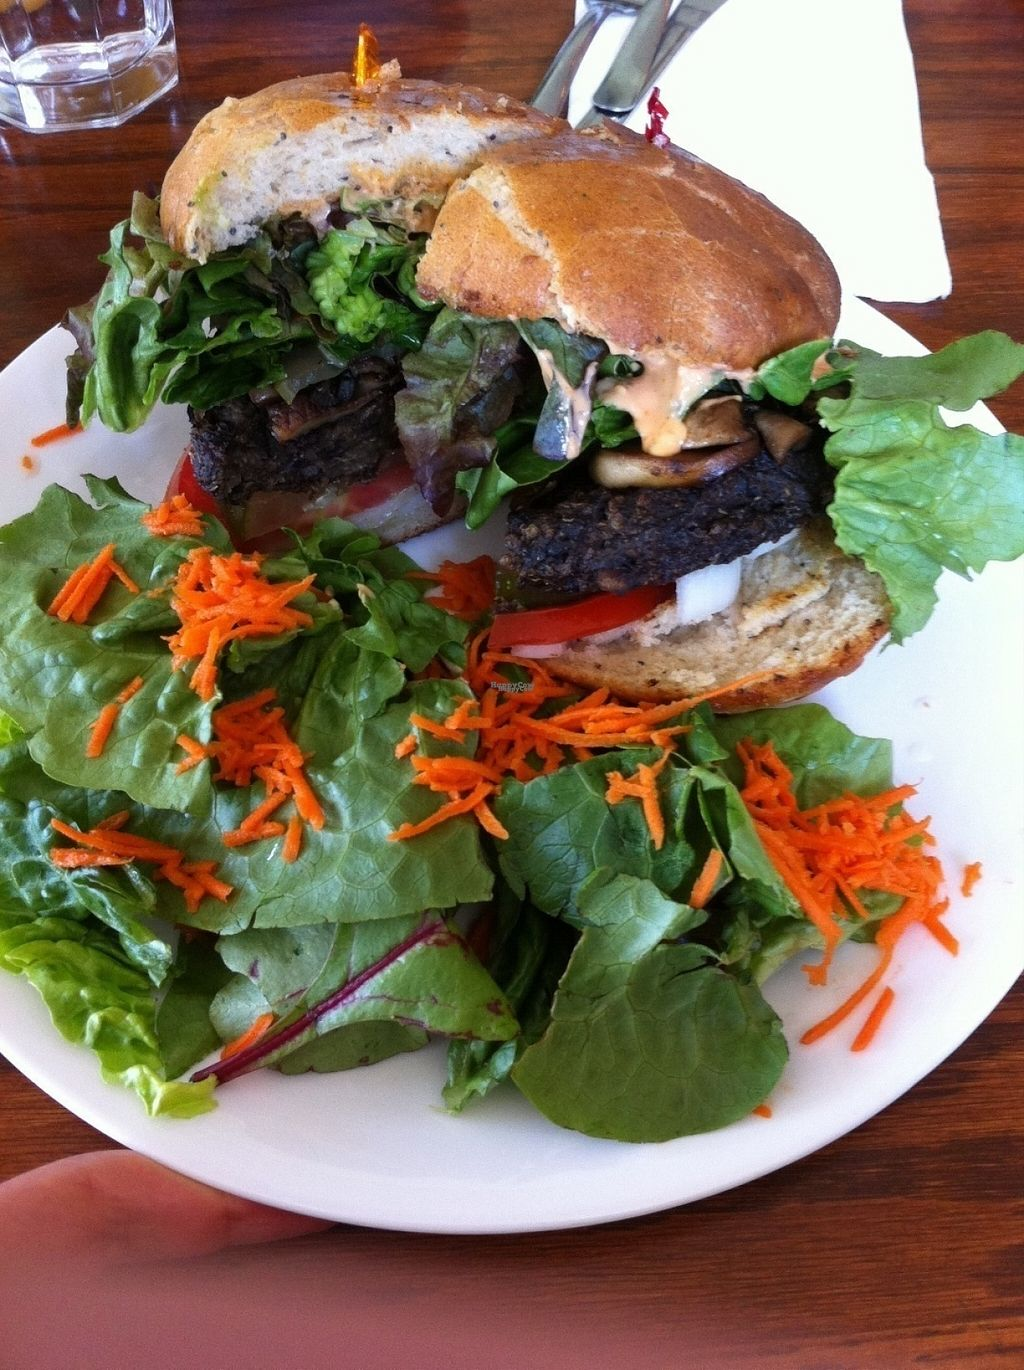 """Photo of Wildflower Cafe and Bakery  by <a href=""""/members/profile/BananaAddict"""">BananaAddict</a> <br/>Blackbean-Quinoa Burger with side salad (no dressing) <br/> August 15, 2016  - <a href='/contact/abuse/image/1480/169145'>Report</a>"""